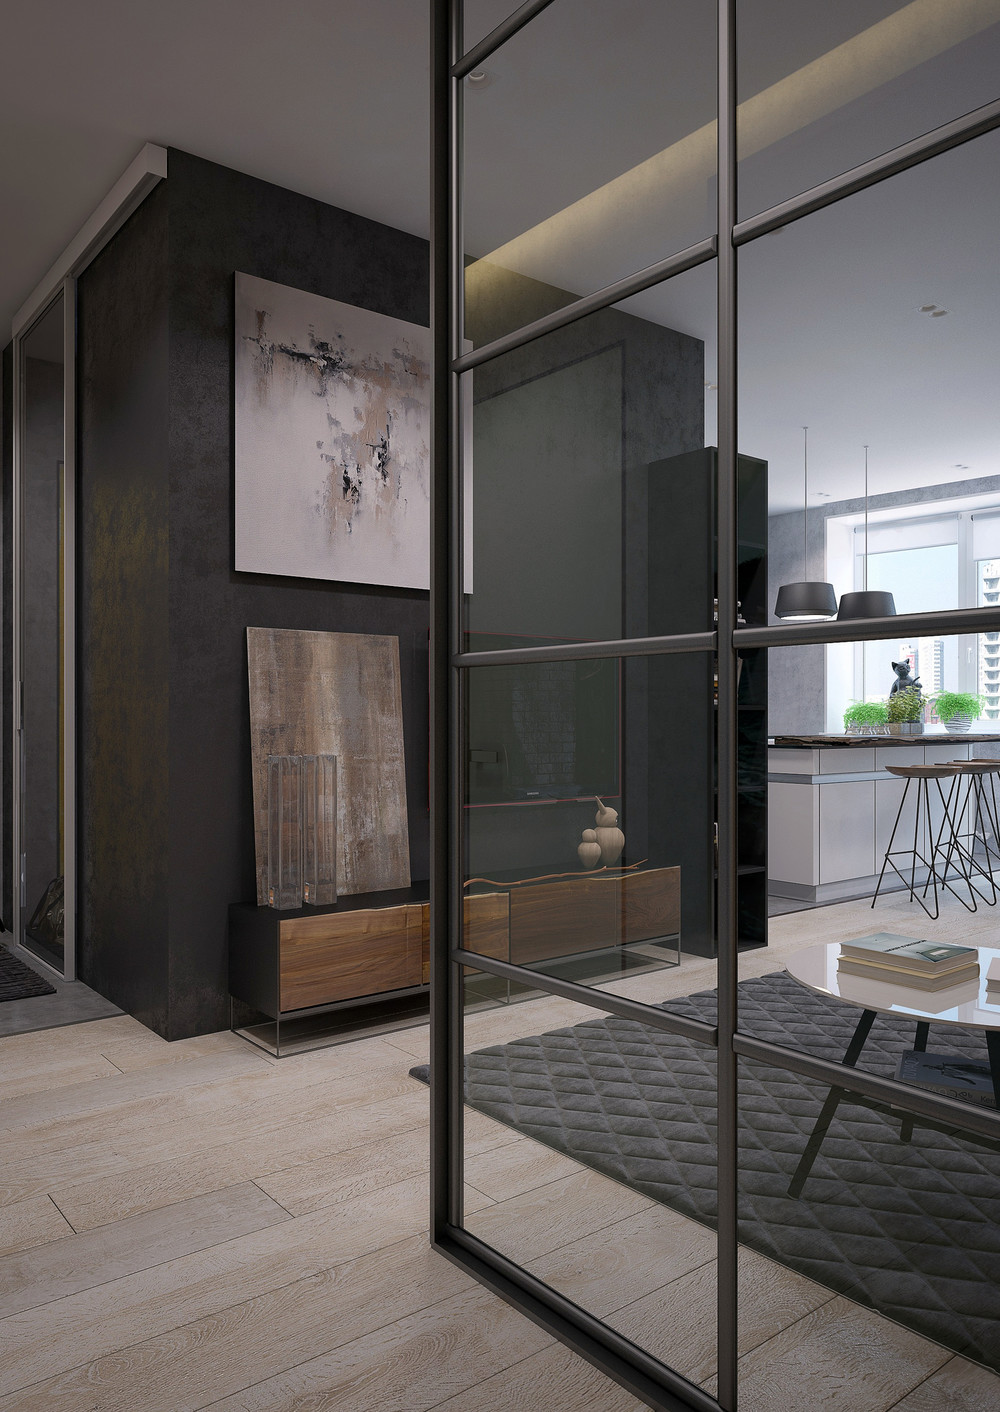 two sleek apartments with interior glass walls - Interior Glass Walls For Homes